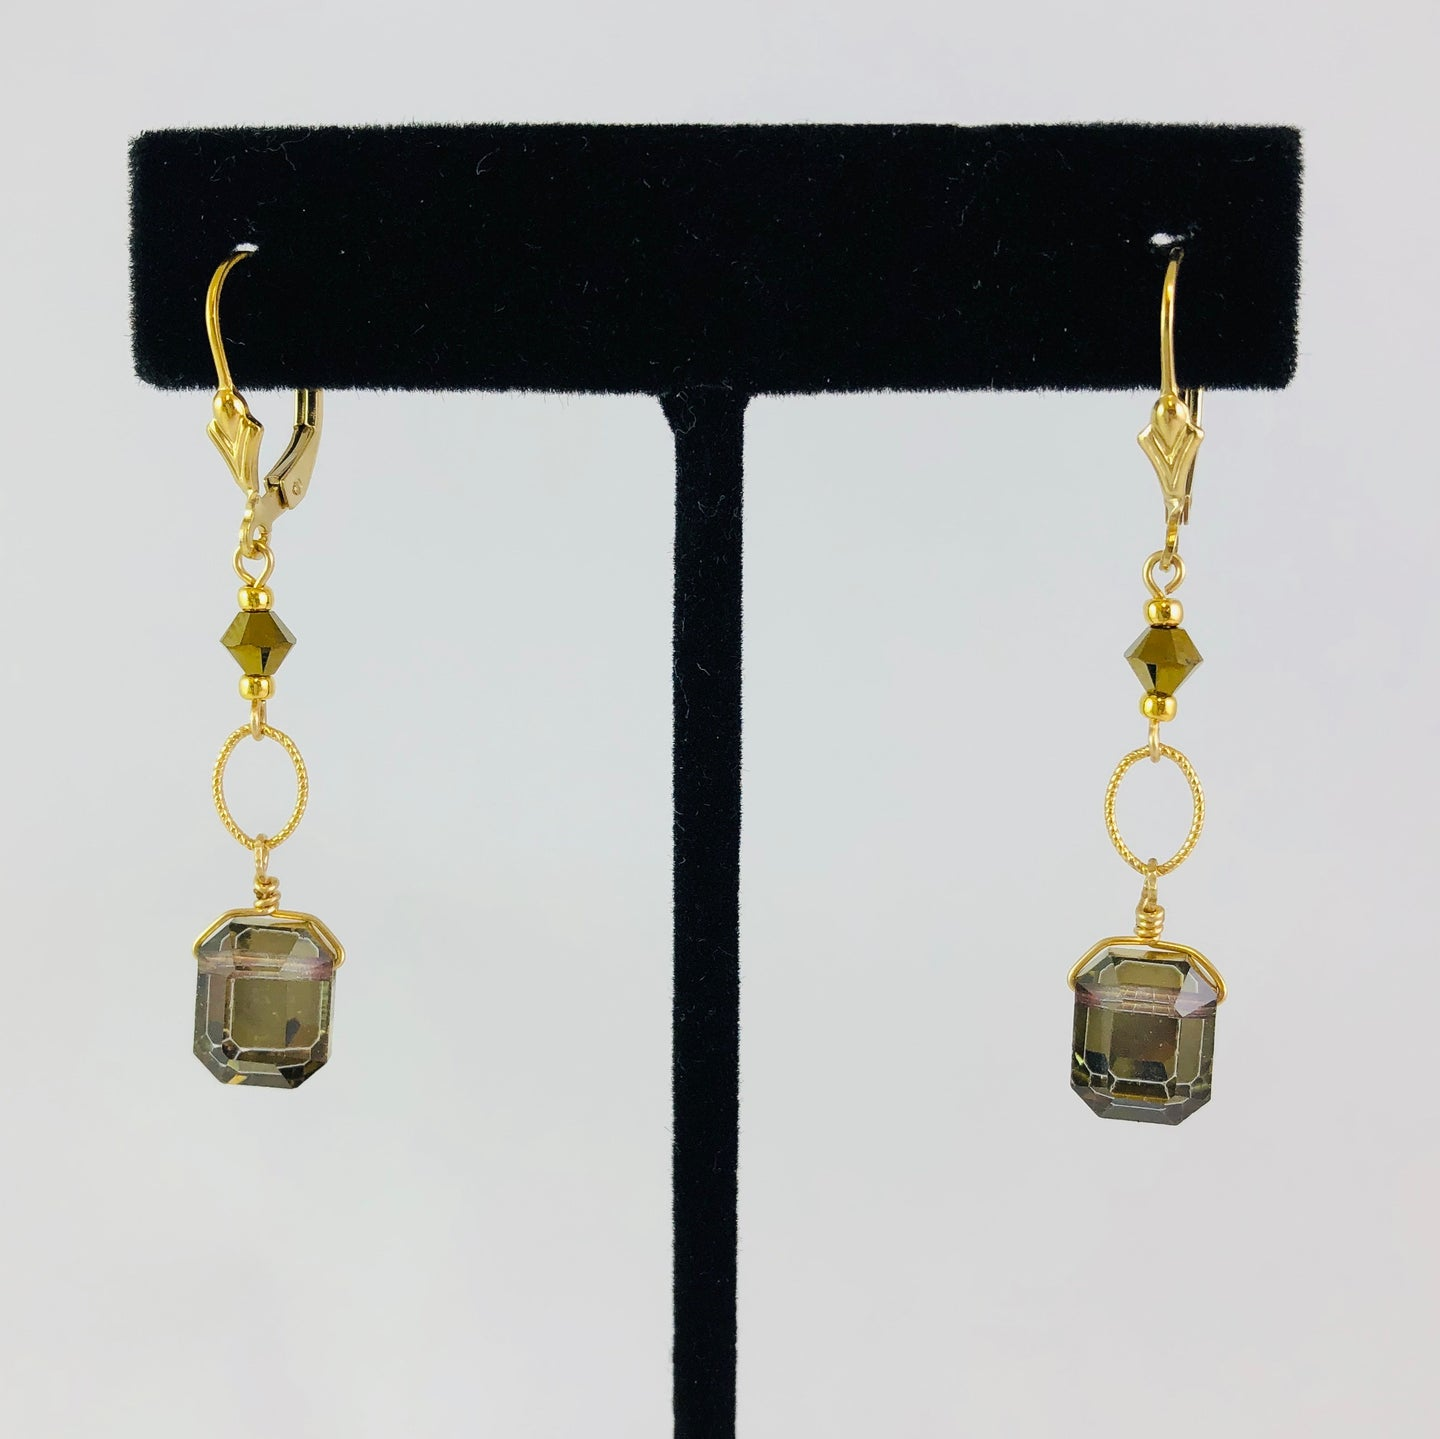 Earrings, EG-EC Medium Gold, by Cynthia Bloom